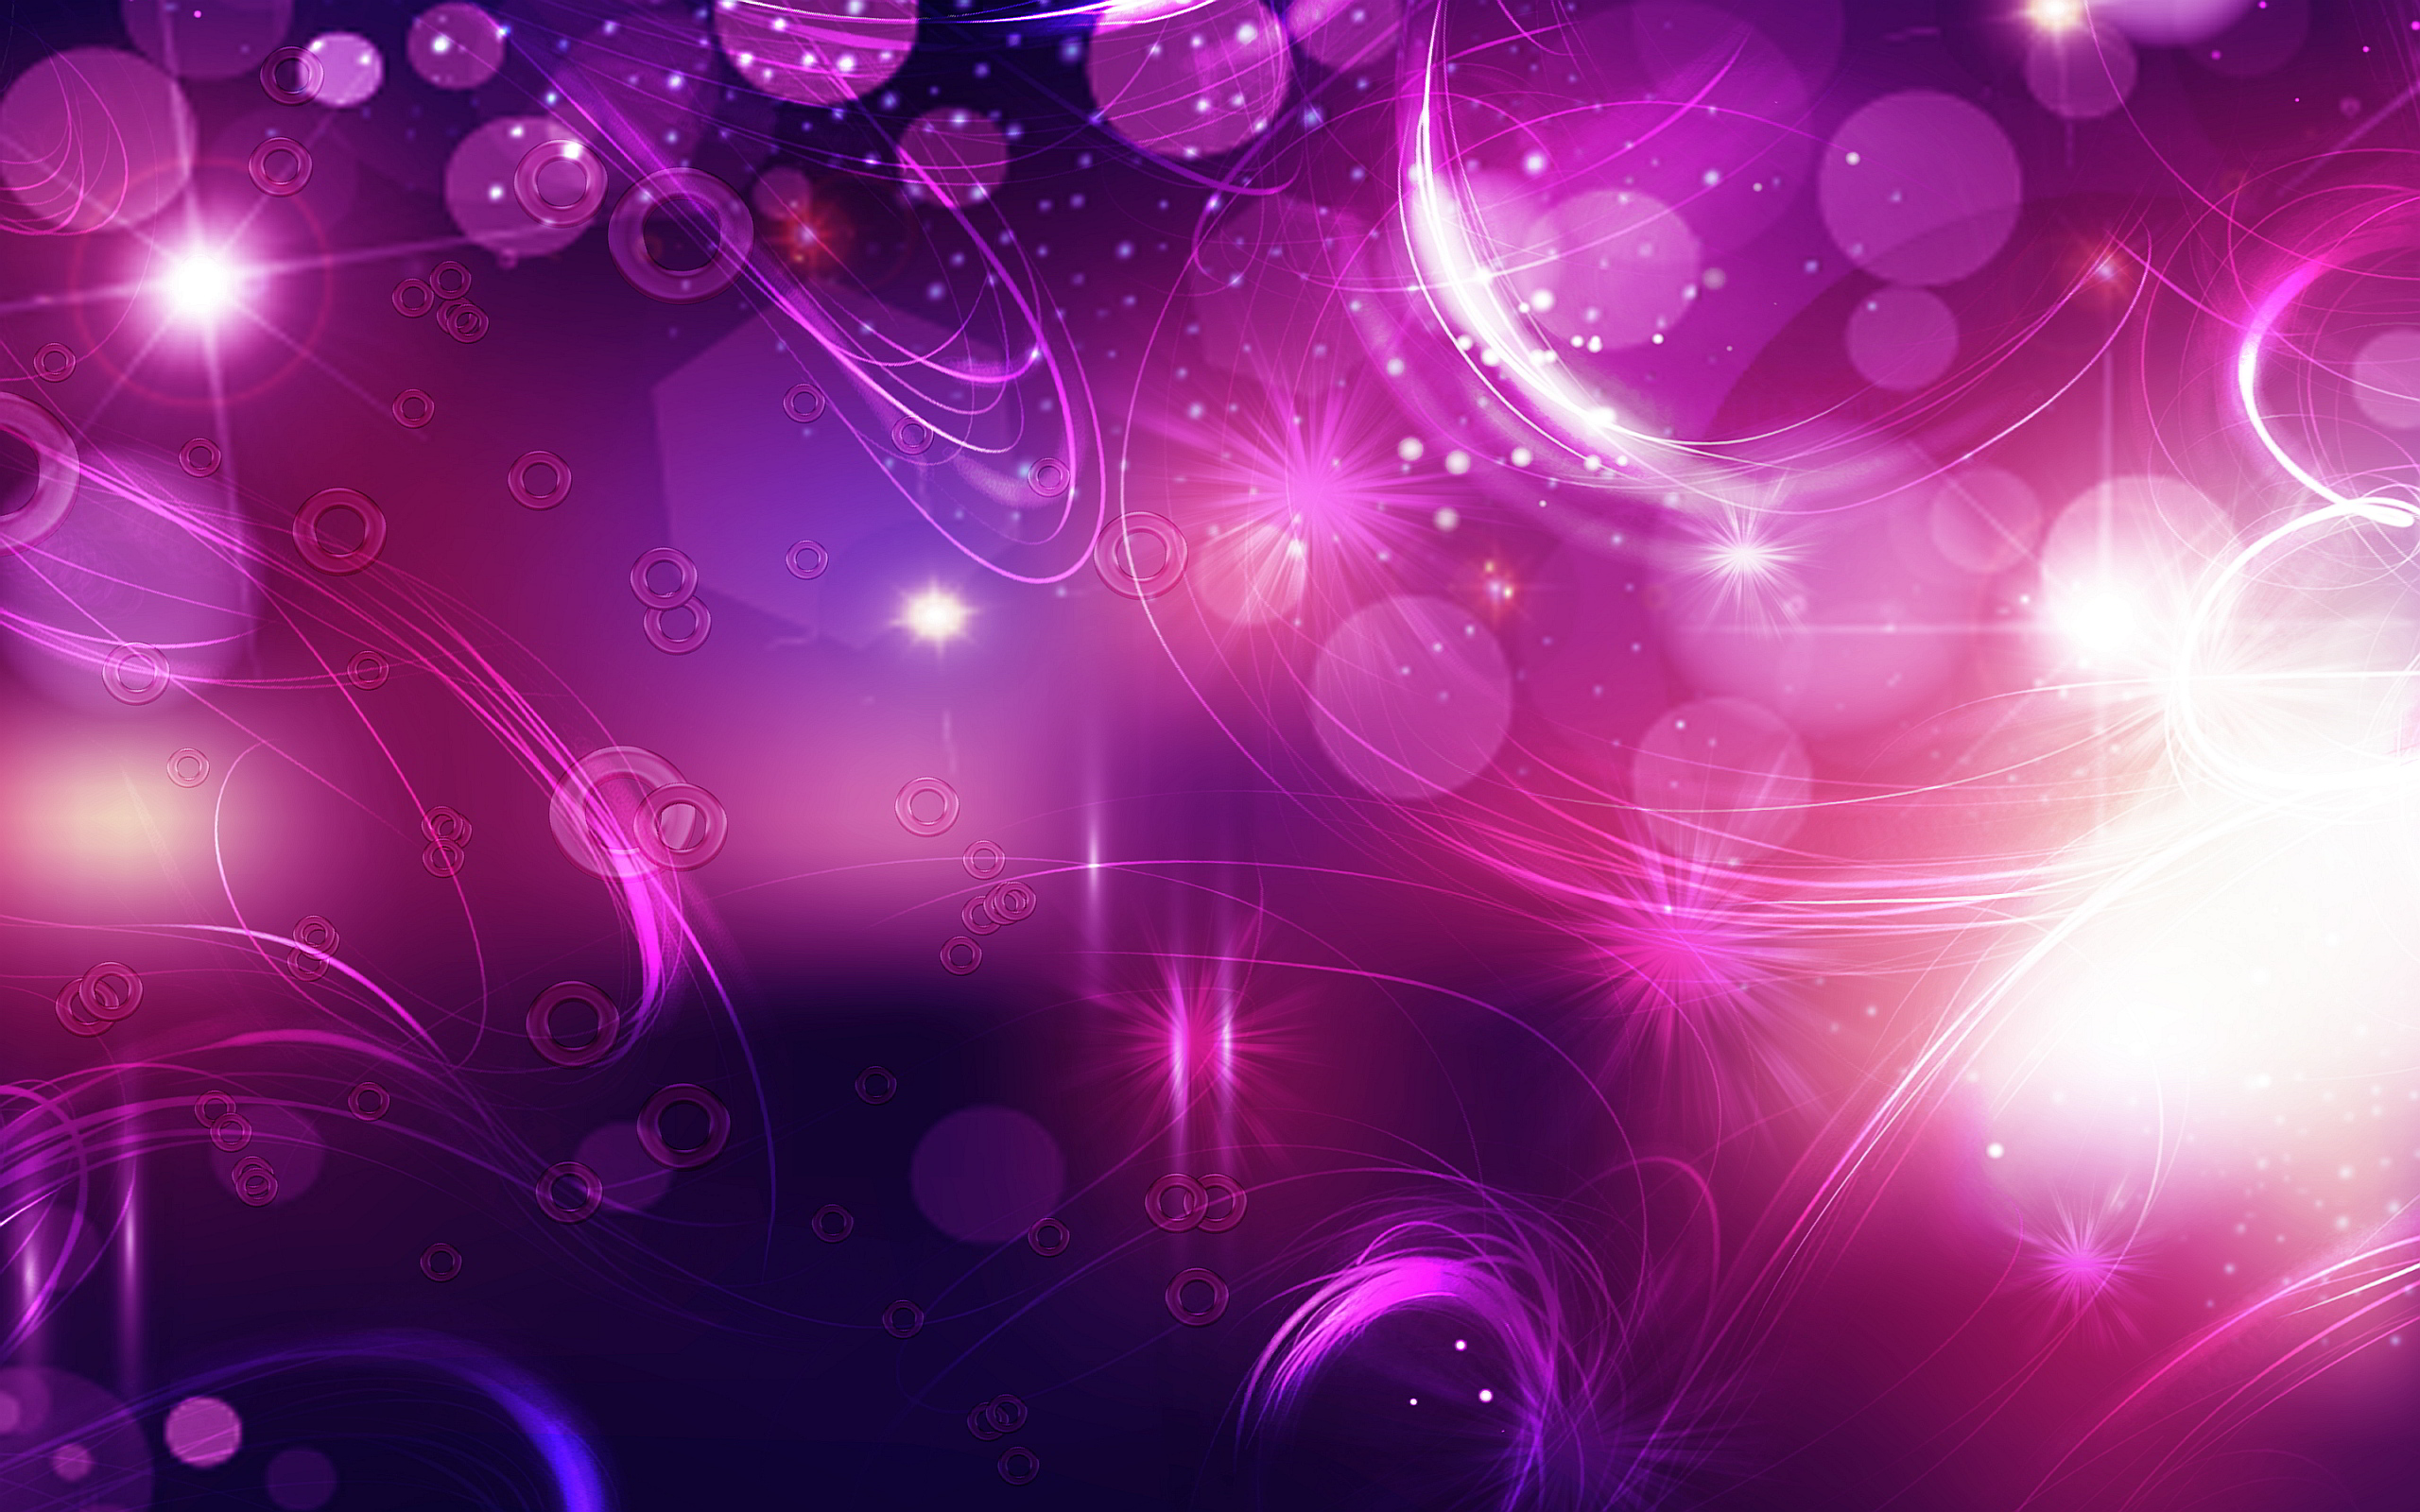 purple hd wallpapers wallpapers backgrounds images art photos